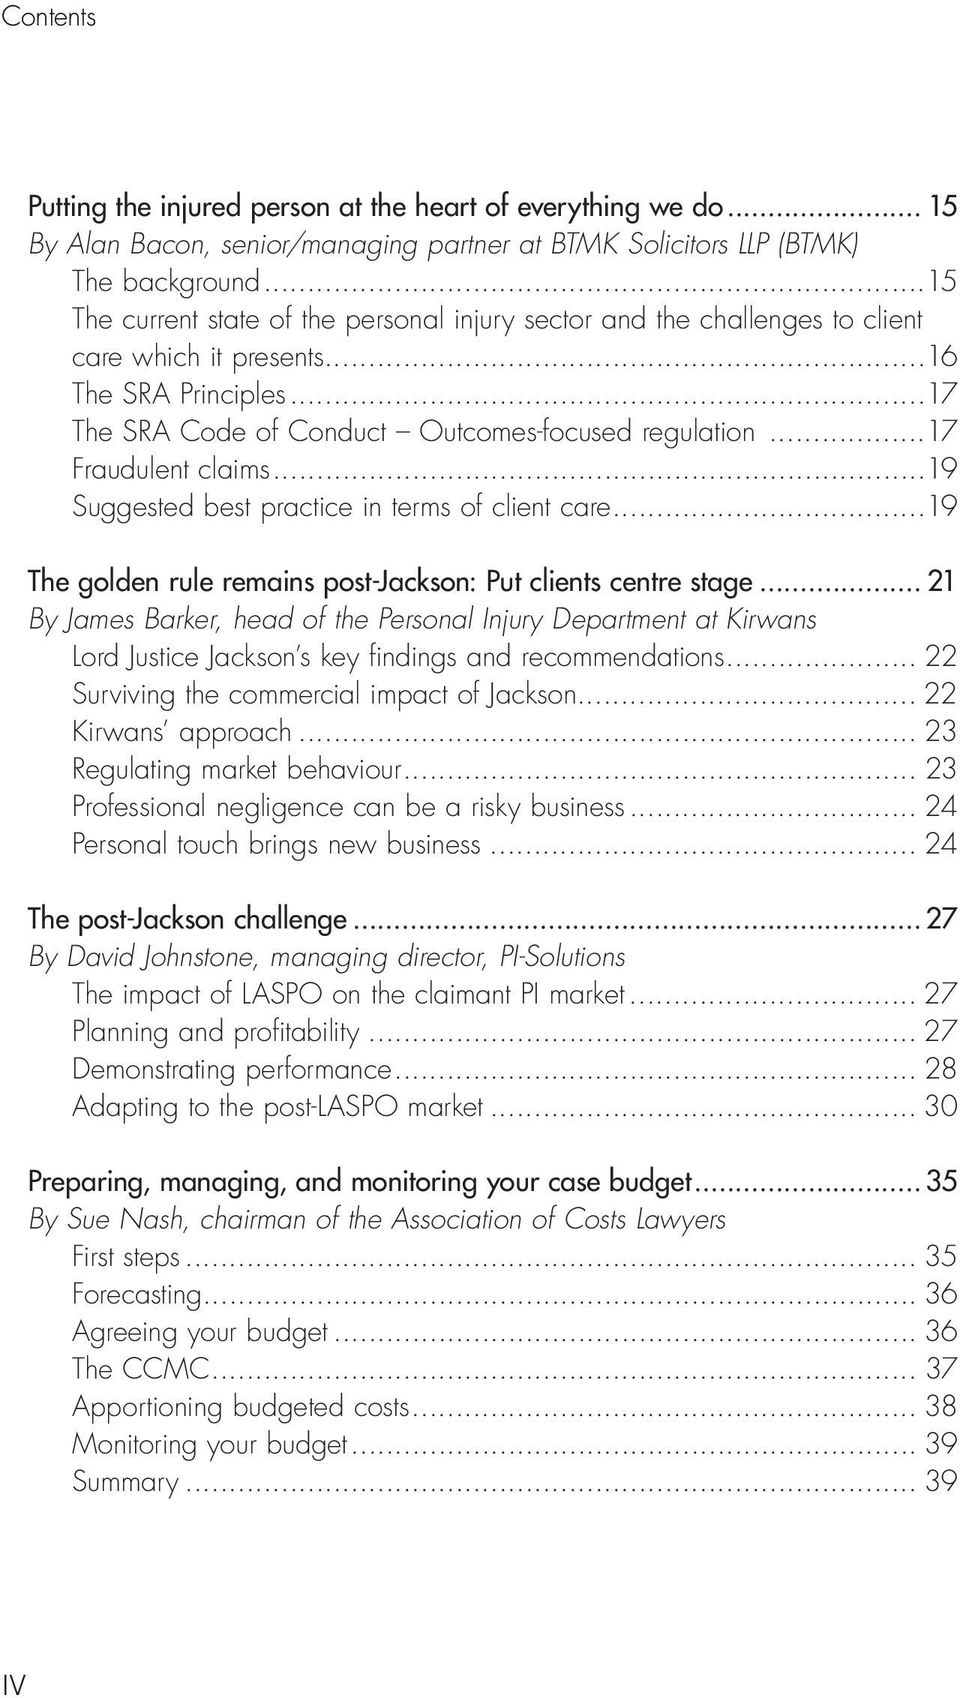 ..17 Fraudulent claims...19 Suggested best practice in terms of client care...19 The golden rule remains post-jackson: Put clients centre stage.